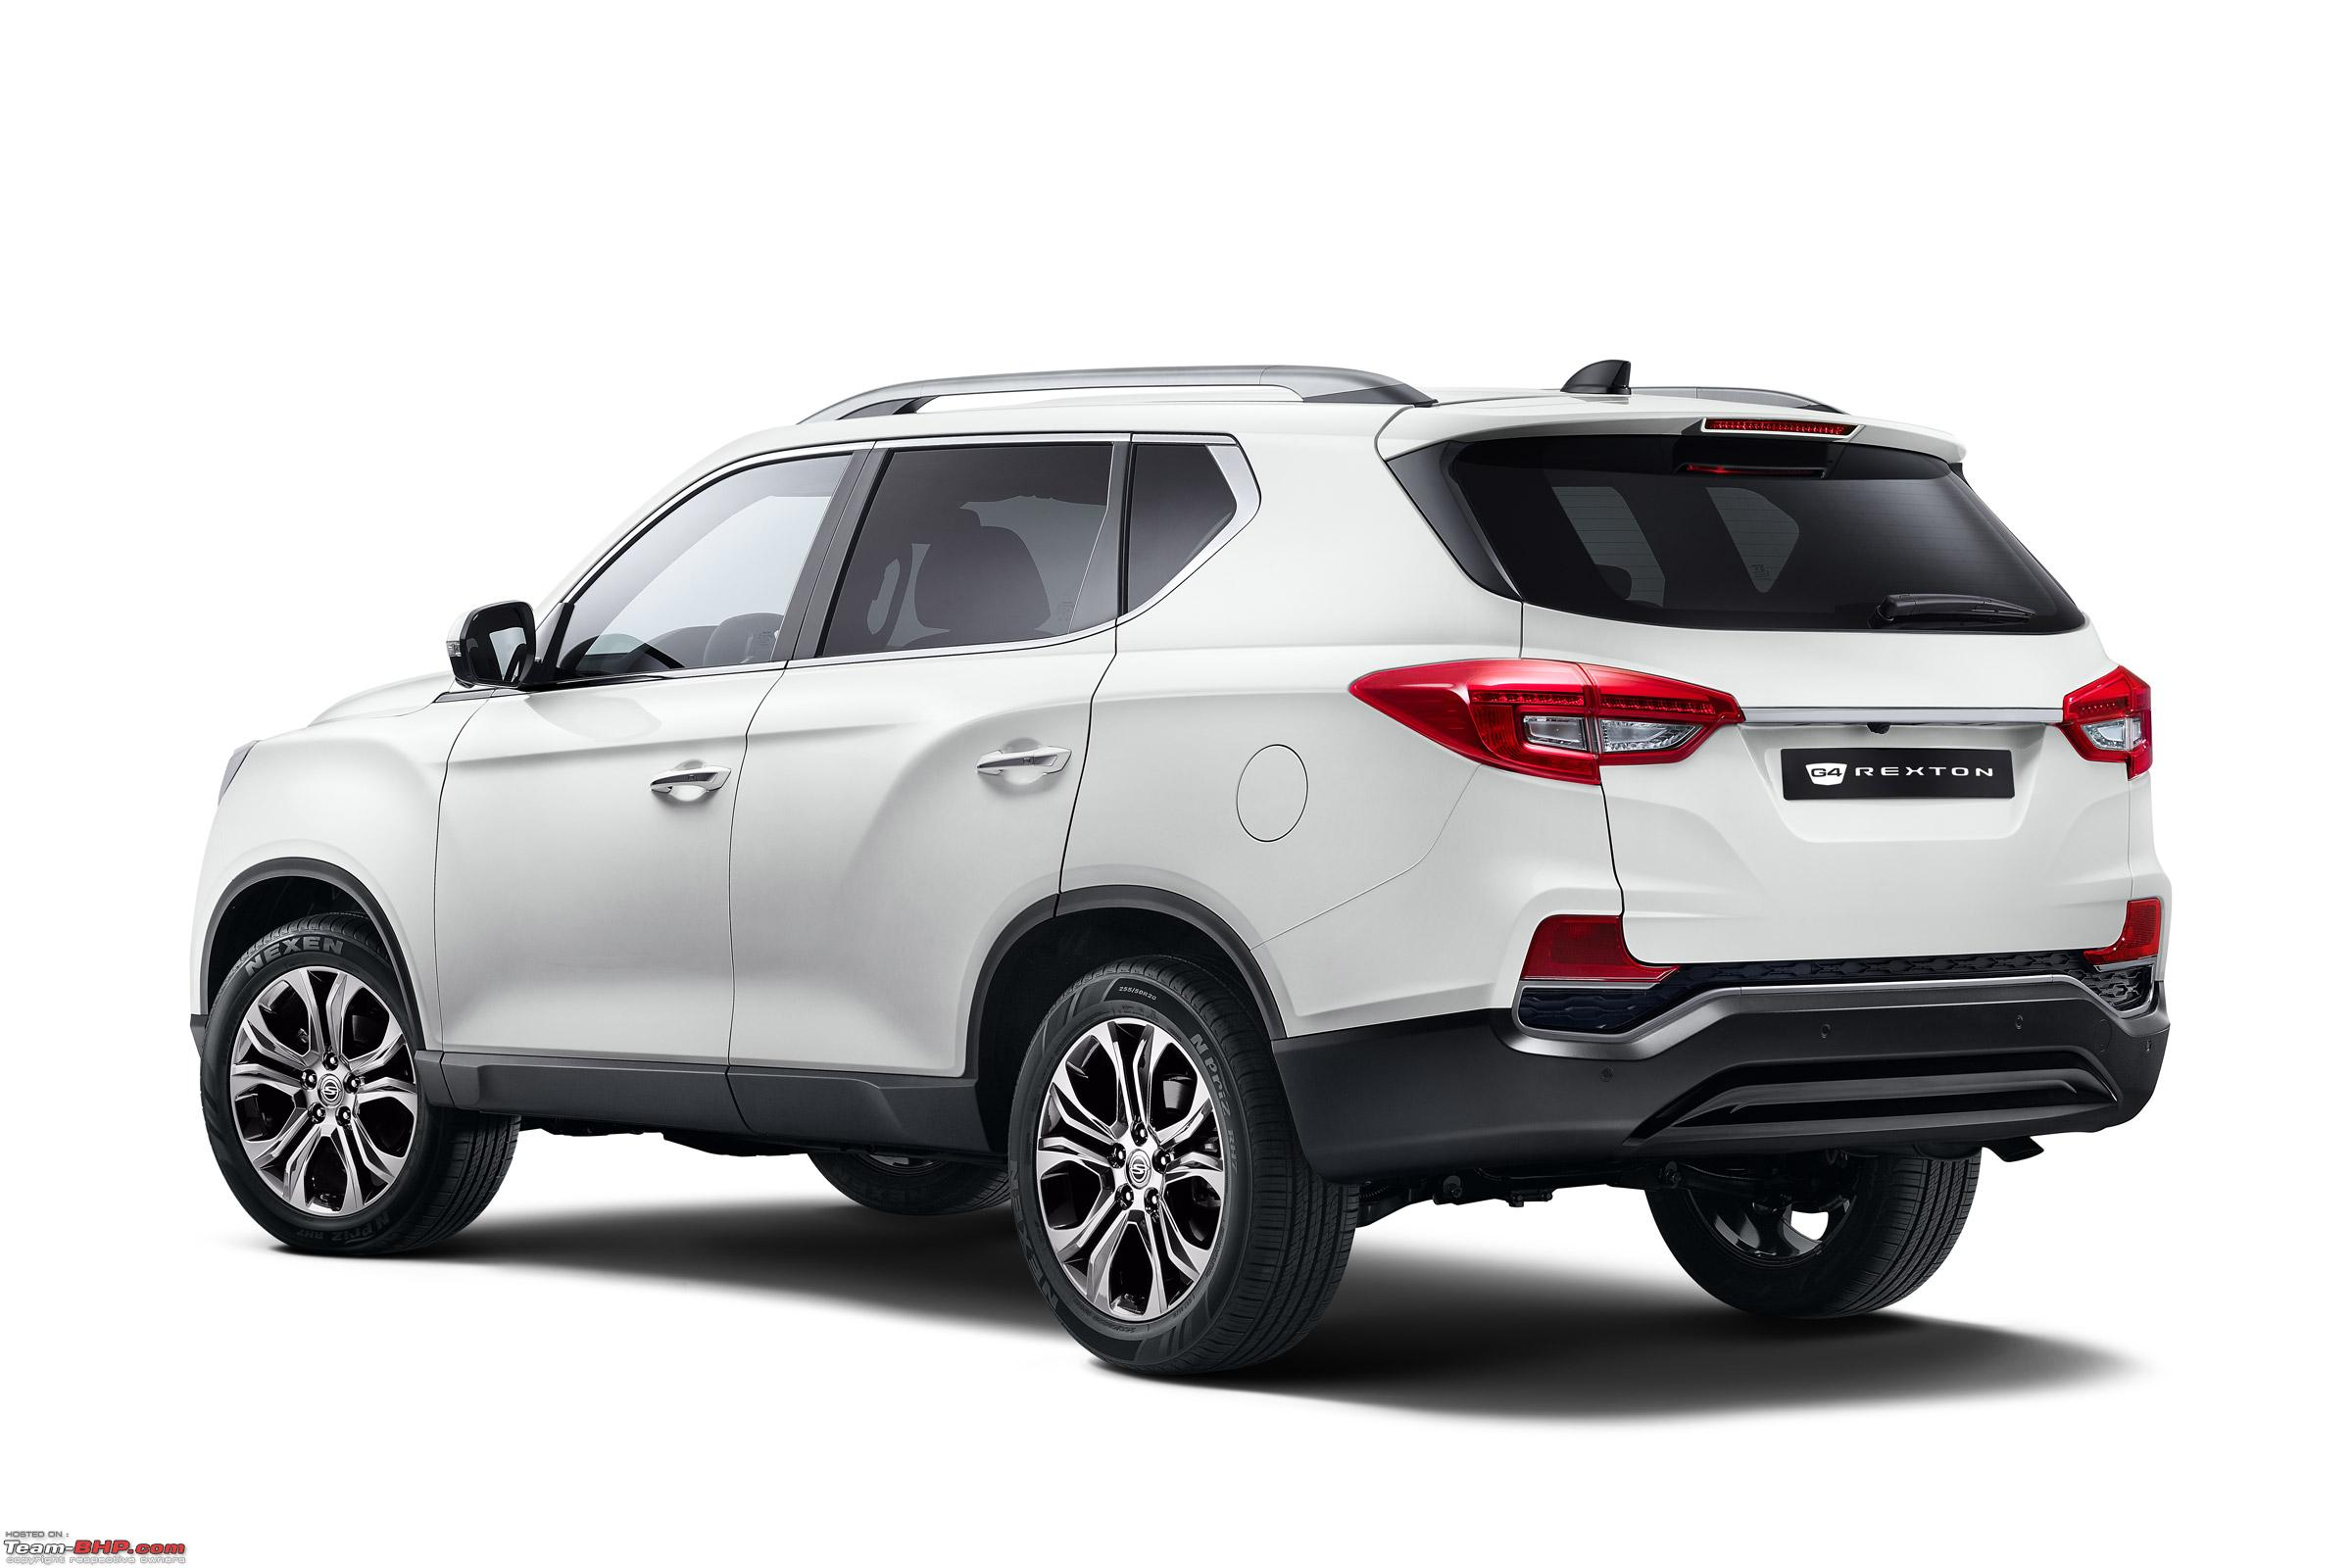 Next Gen Ssangyong Rexton Y400 To Be Sold As A Mahindra